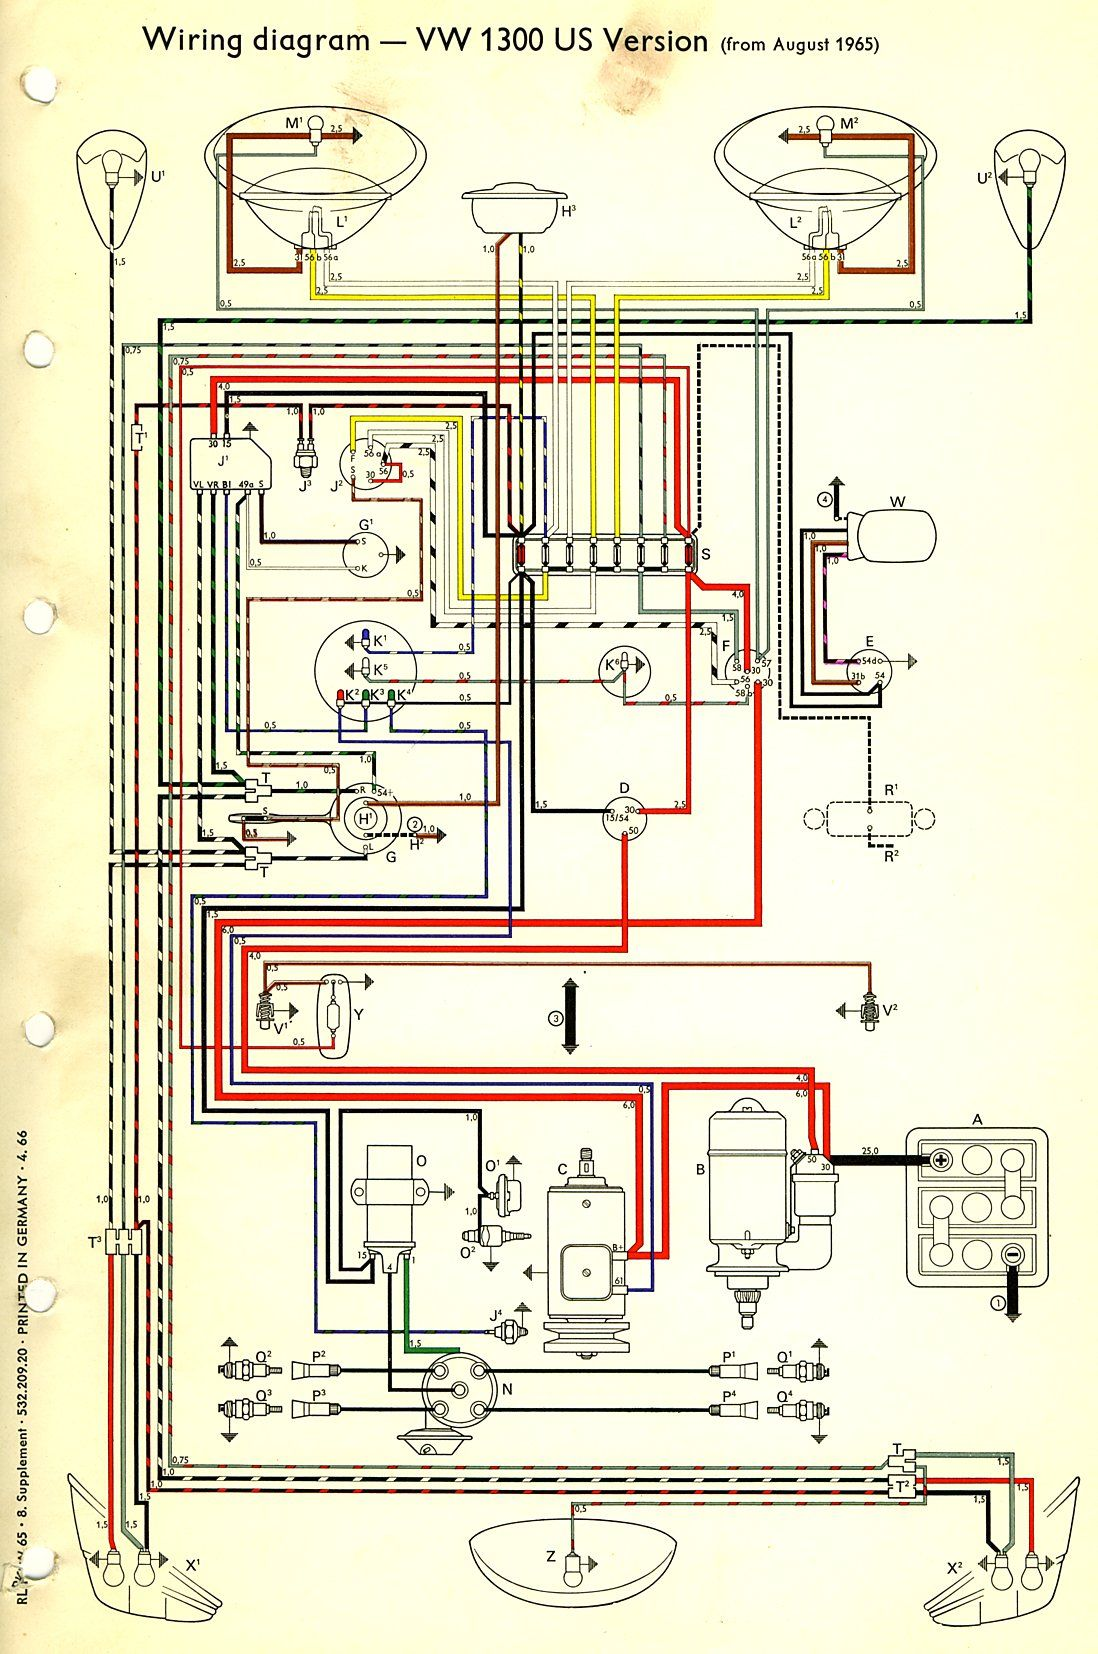 pin by jeffrey on buggy vw dune buggy diagram wire chinese buggy wiring diagram buggy wiring diagram [ 1098 x 1654 Pixel ]